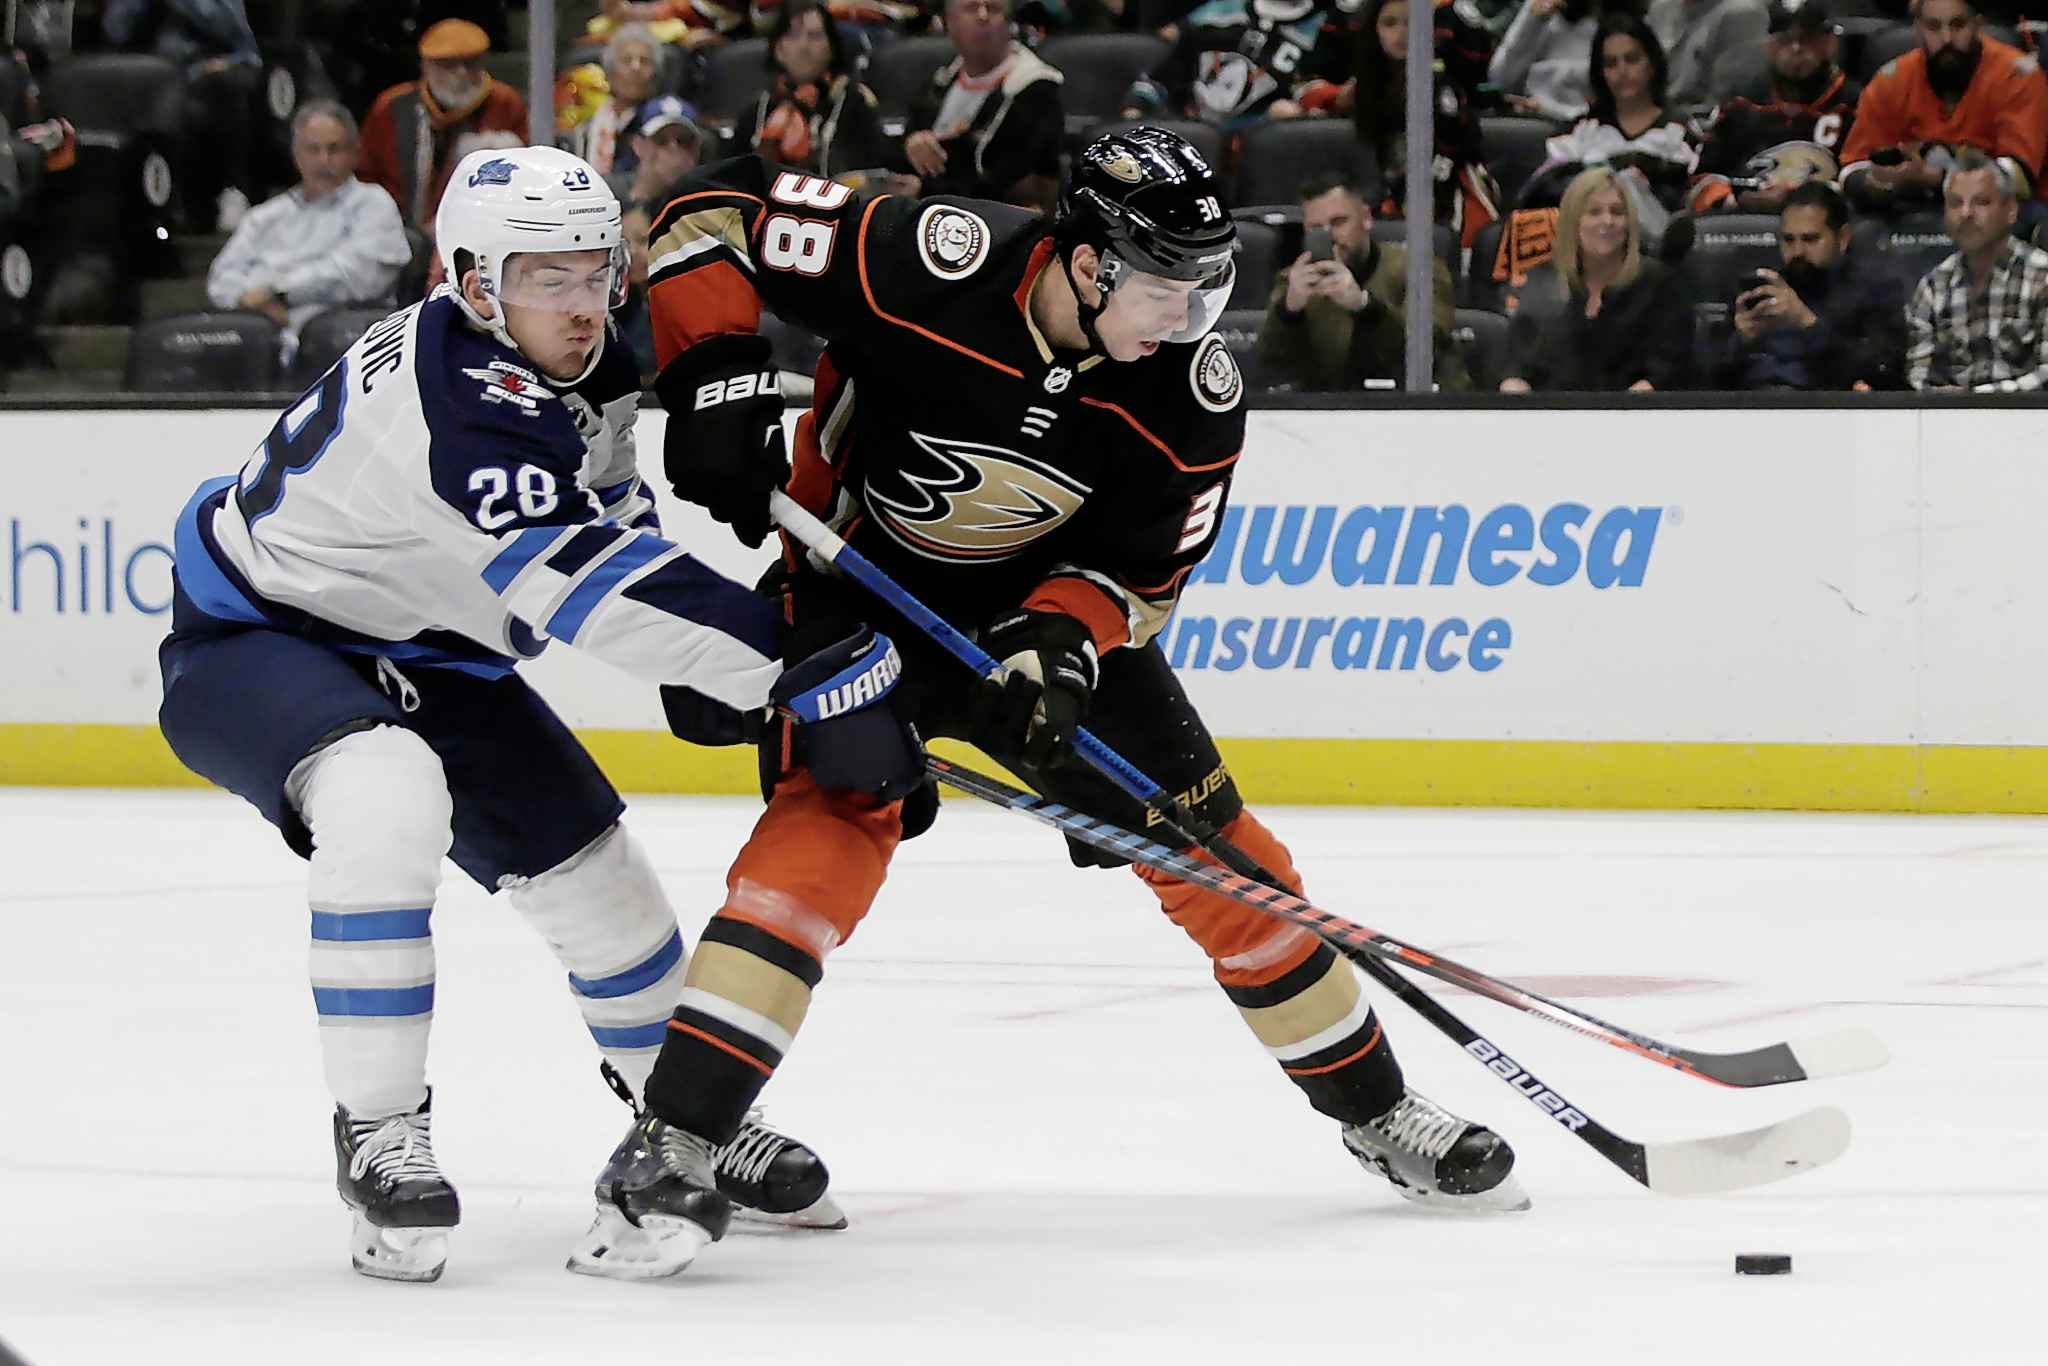 Anaheim Ducks centre Derek Grant, right, controls the puck in front of Winnipeg Jets' Jack Roslovic during the second period.